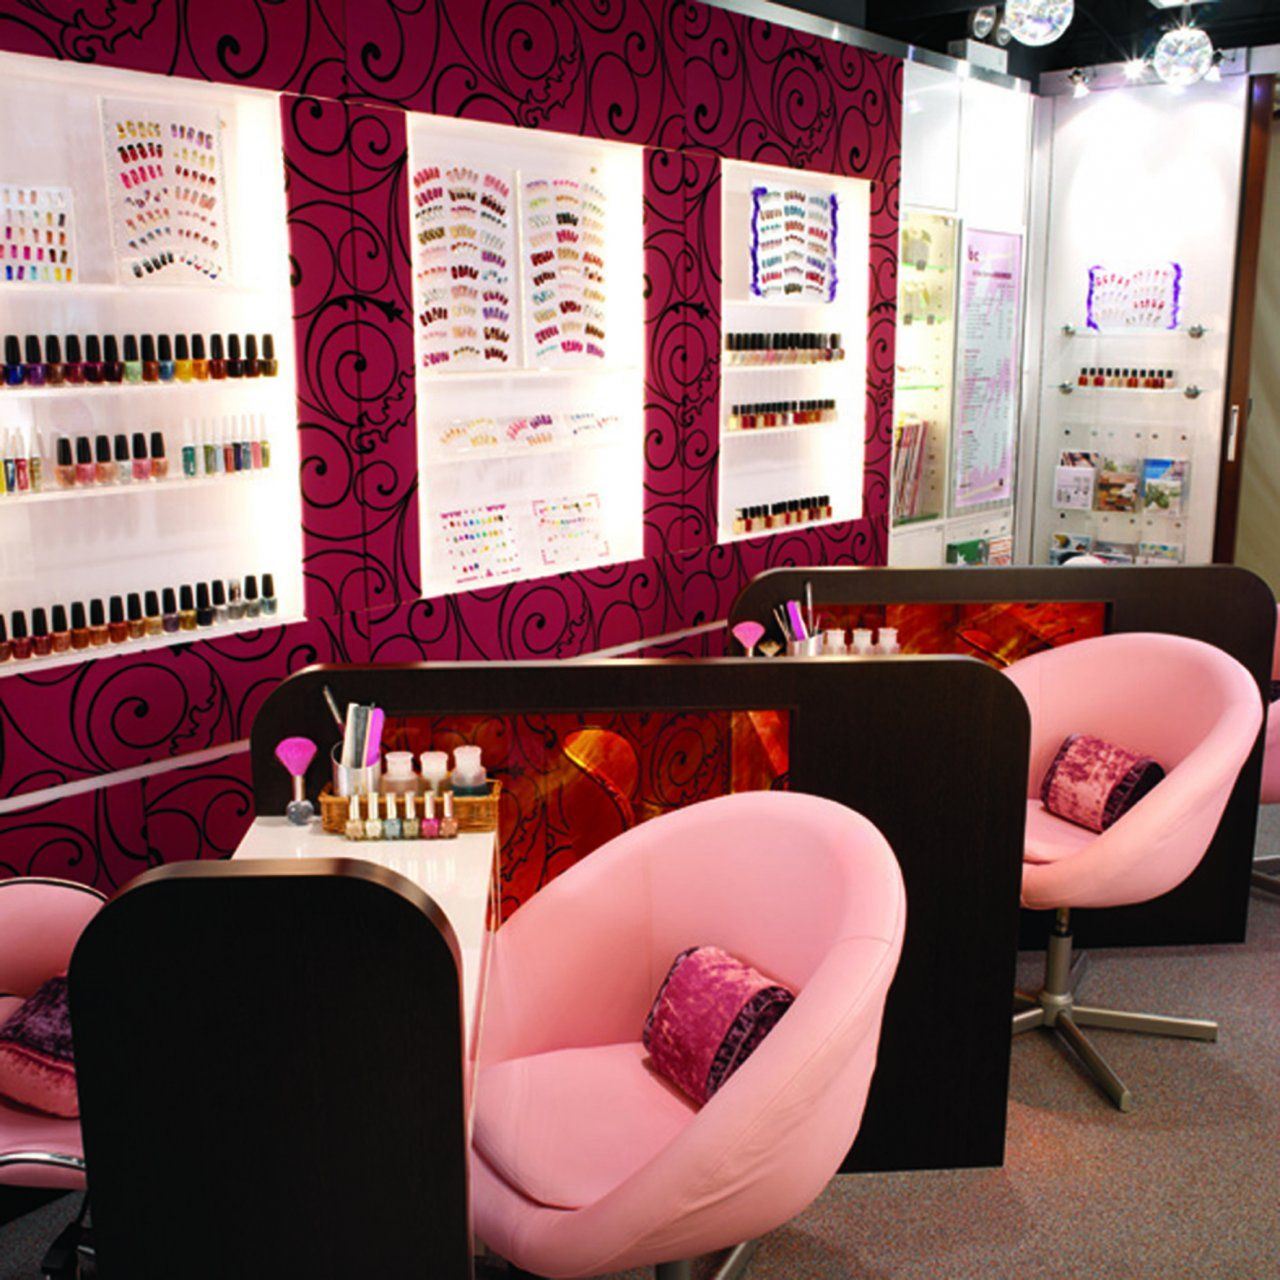 Nail Salon Interior Design Ideas With Images Nail Salon Design